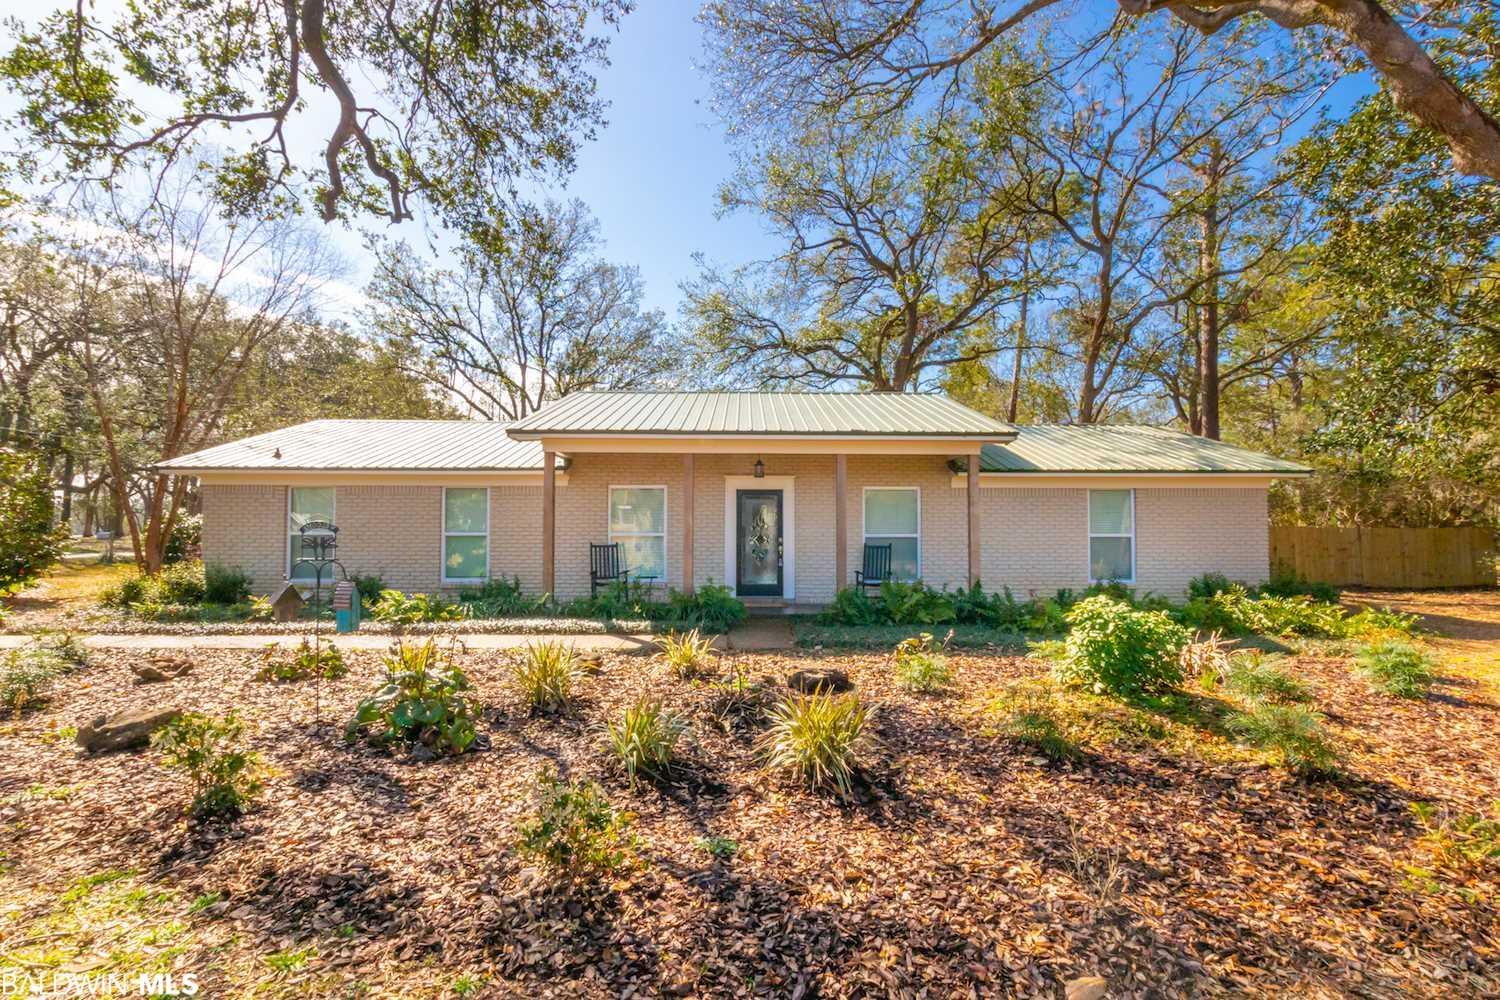 Renovated ranch beauty in Fairhope now available! Originally constructed in 1975 and renovated in 2015, this gorgeous 3 bedroom, 2 bath home is move-in-ready and includes so many wonderful features. Situated on just over 1 acre of of land on a corner lot, the property boasts a circle side drive, as well as a gated entrance with carport. Metal roof was installed in 2014 and HVAC was installed in 2020. Inside, you'll love the open concept floor plan with a separate dining room. The large wood burning fireplace is a focal point of the living area and is open to the kitchen. Granite countertops, shaker style cabinets, tiled backsplash, pro series kitchen appliances and split brick floors adorn this beautifully remodeled cooking space. The large utility room with half door is a must see and perfect for containing pets. The guest bath features a granite vanity and frameless shower door. The master bath also features a granite vanity and classic, white subway tile. Bedrooms, living, dining and hallway have laminate flooring. Outside, you'll fall in love with the space to entertain, large oaks and fenced in yard. Just beyond the fence, there is a 20x30 workshop with automatic door, perfect for storing tools and toys. This location can't be beat... minutes to downtown Fairhope, the bay and the beach! Schedule your showing today!